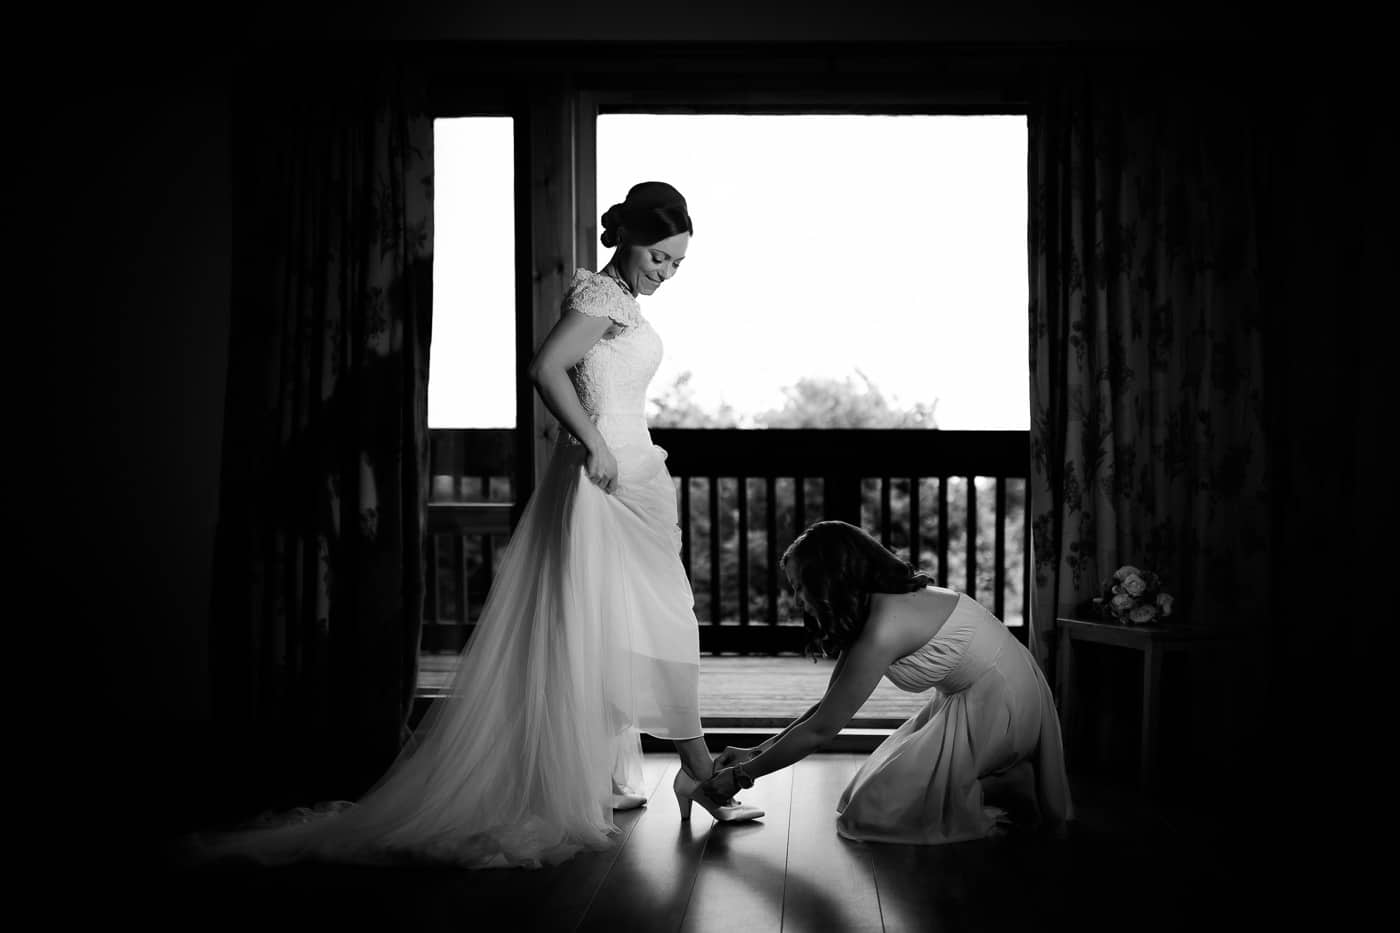 The bride getting ready at the Forbes of Kingenny near Dundee Scotland